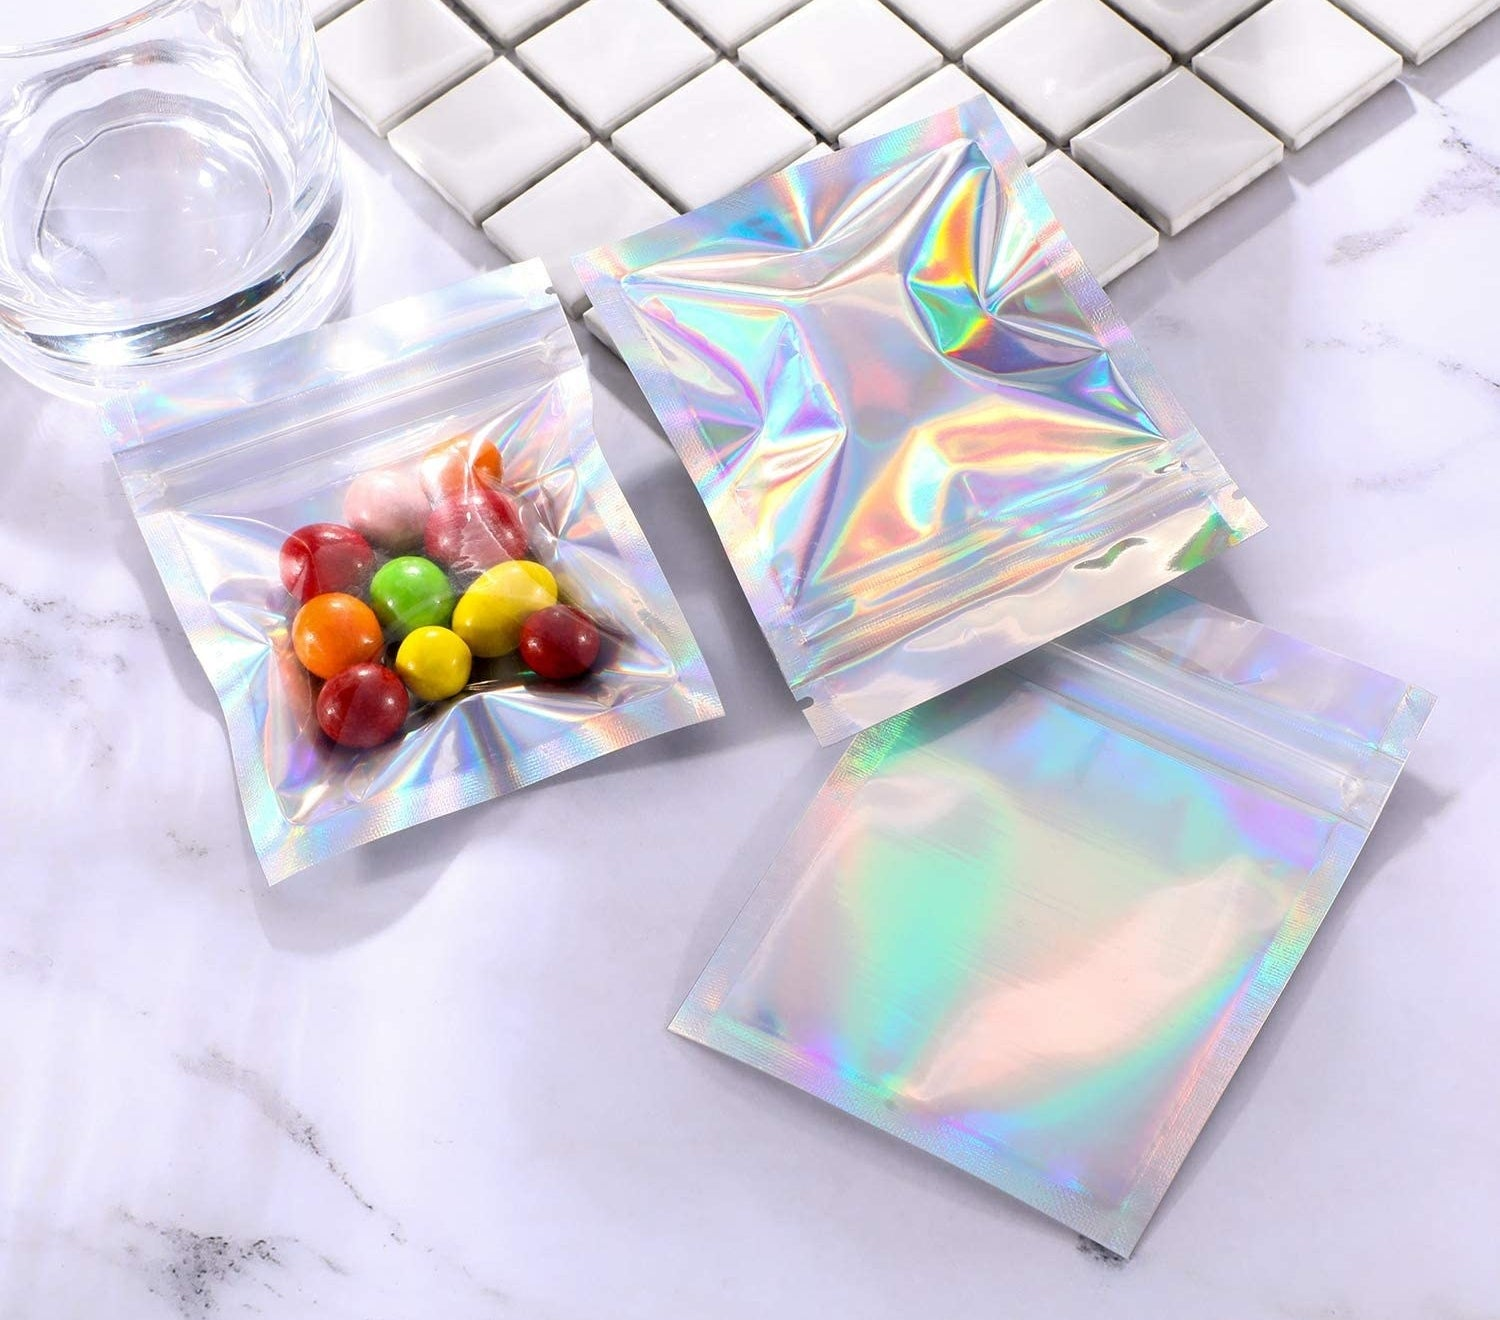 A flatlay of holographic snack pouches containing colourful candy